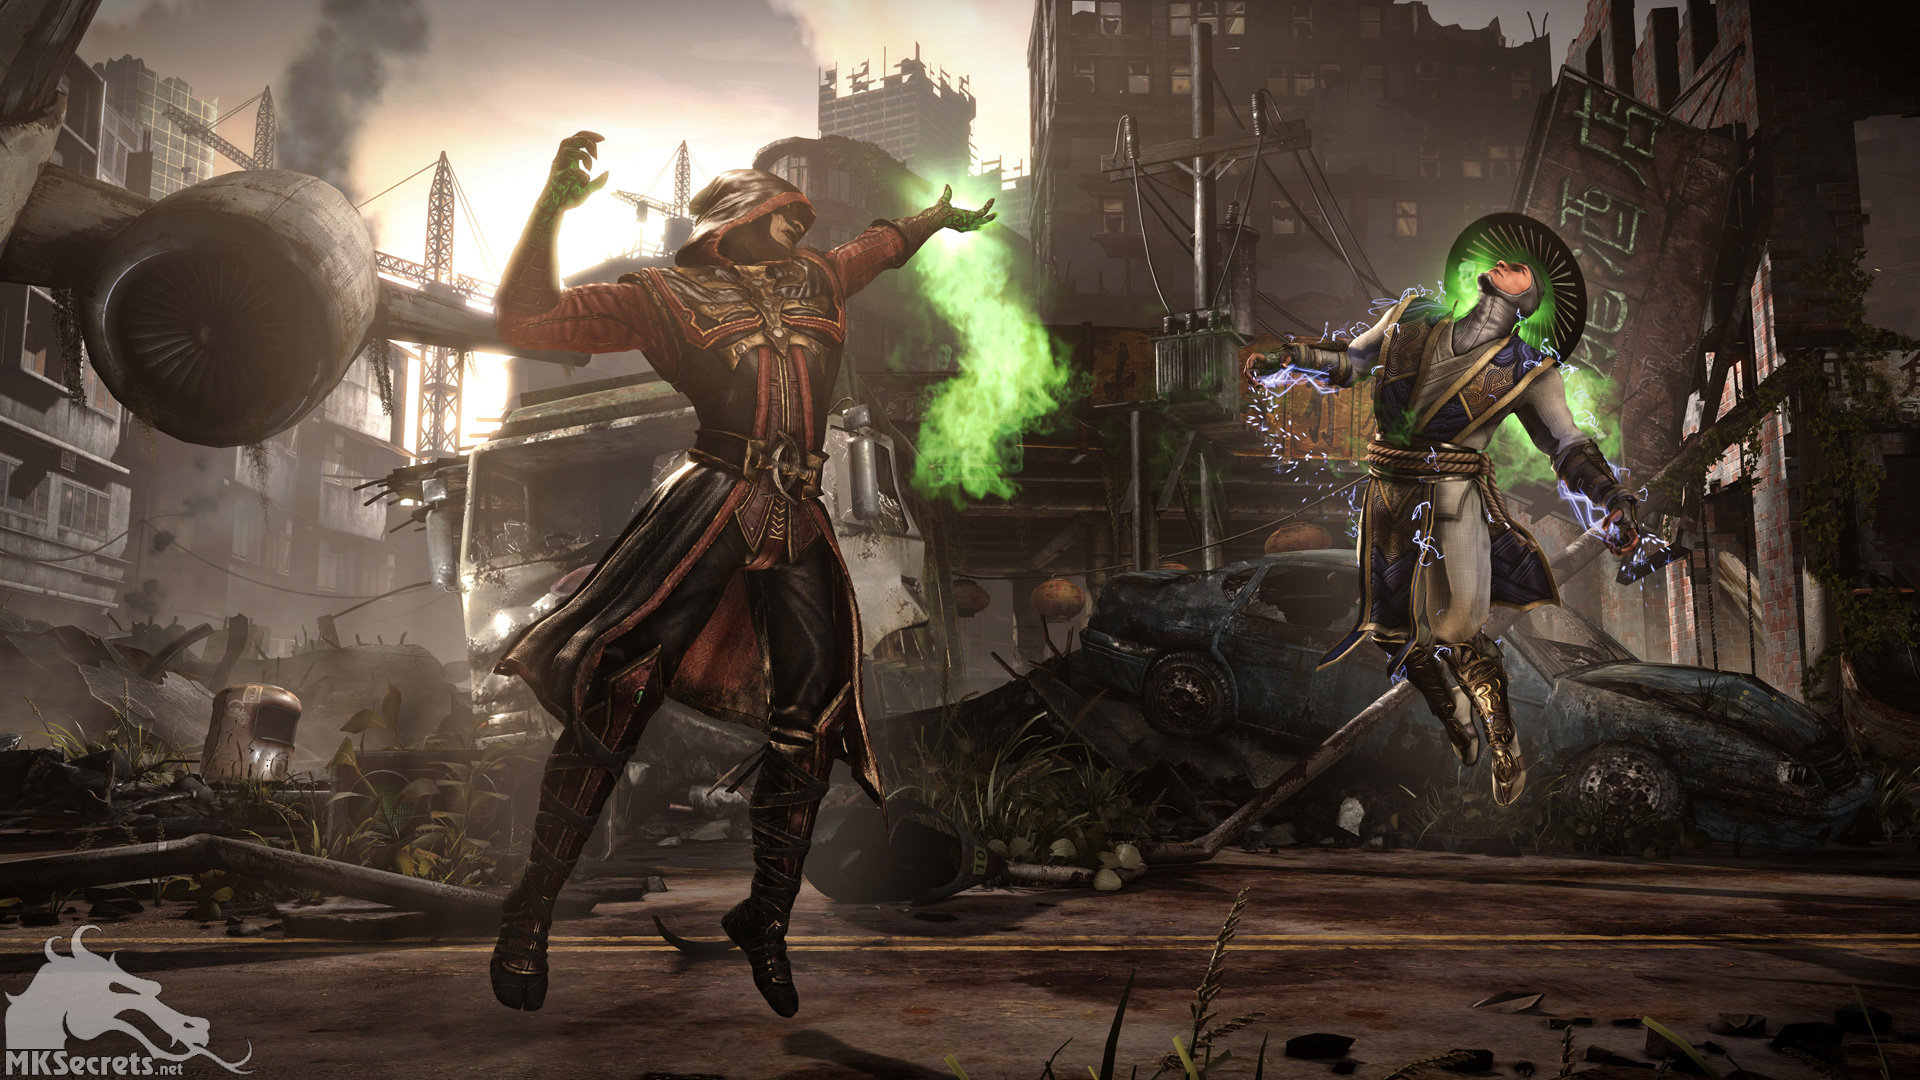 Johnson ting mortal kombat x ermac vs raiden destroyed city